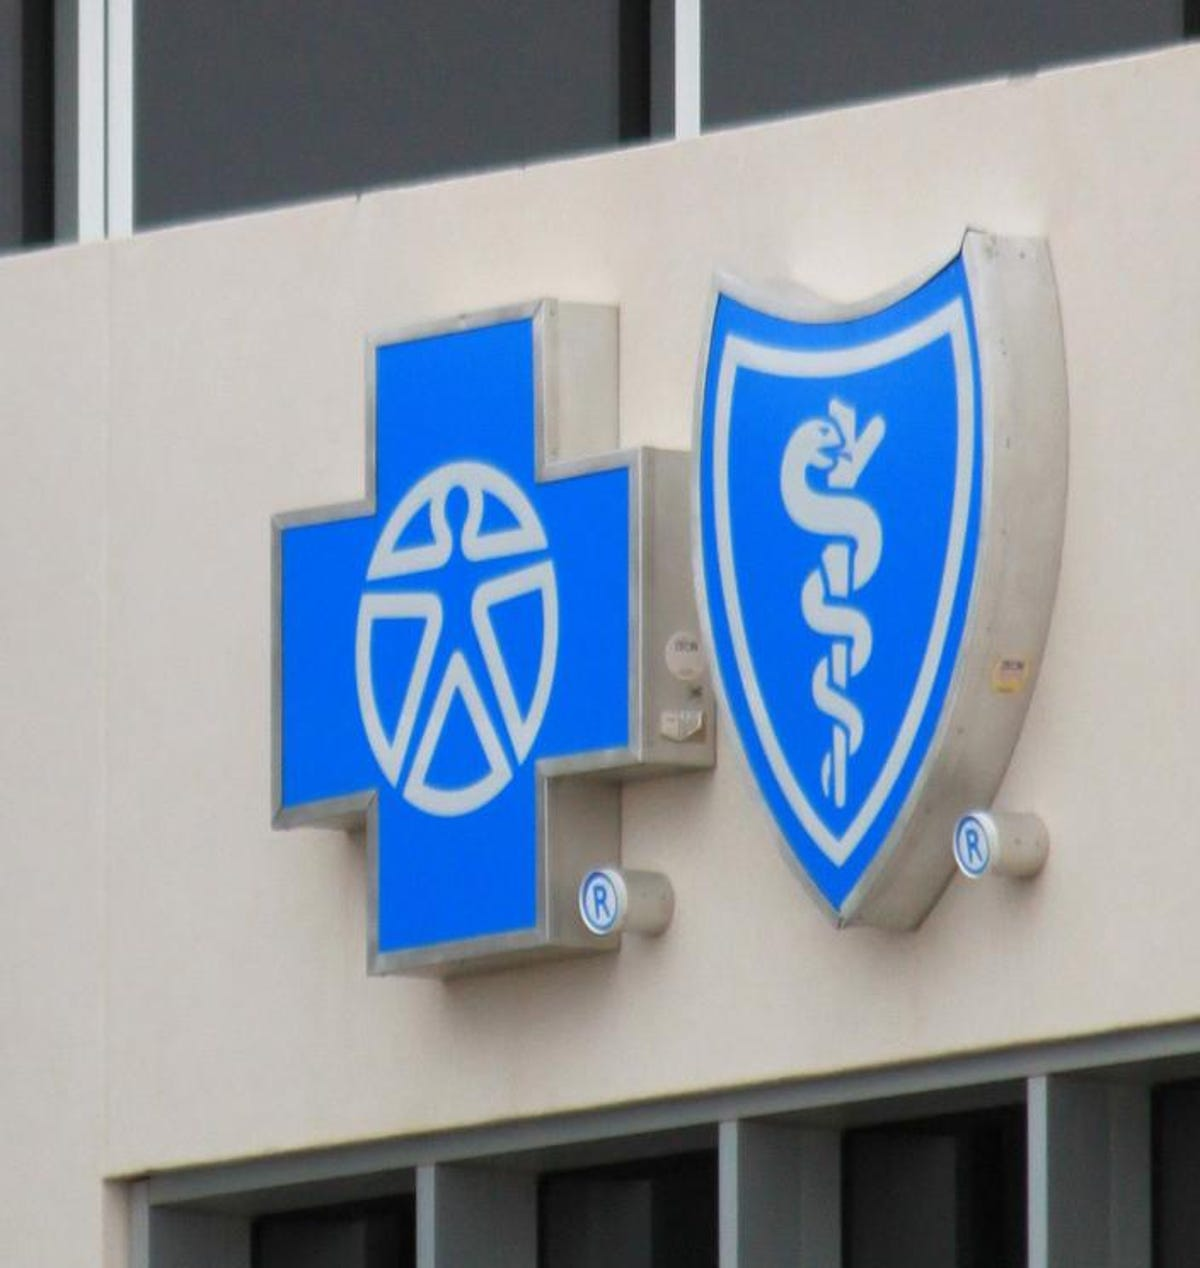 $19 2M paid to CEO of Blue Cross Blue Shield of Michigan